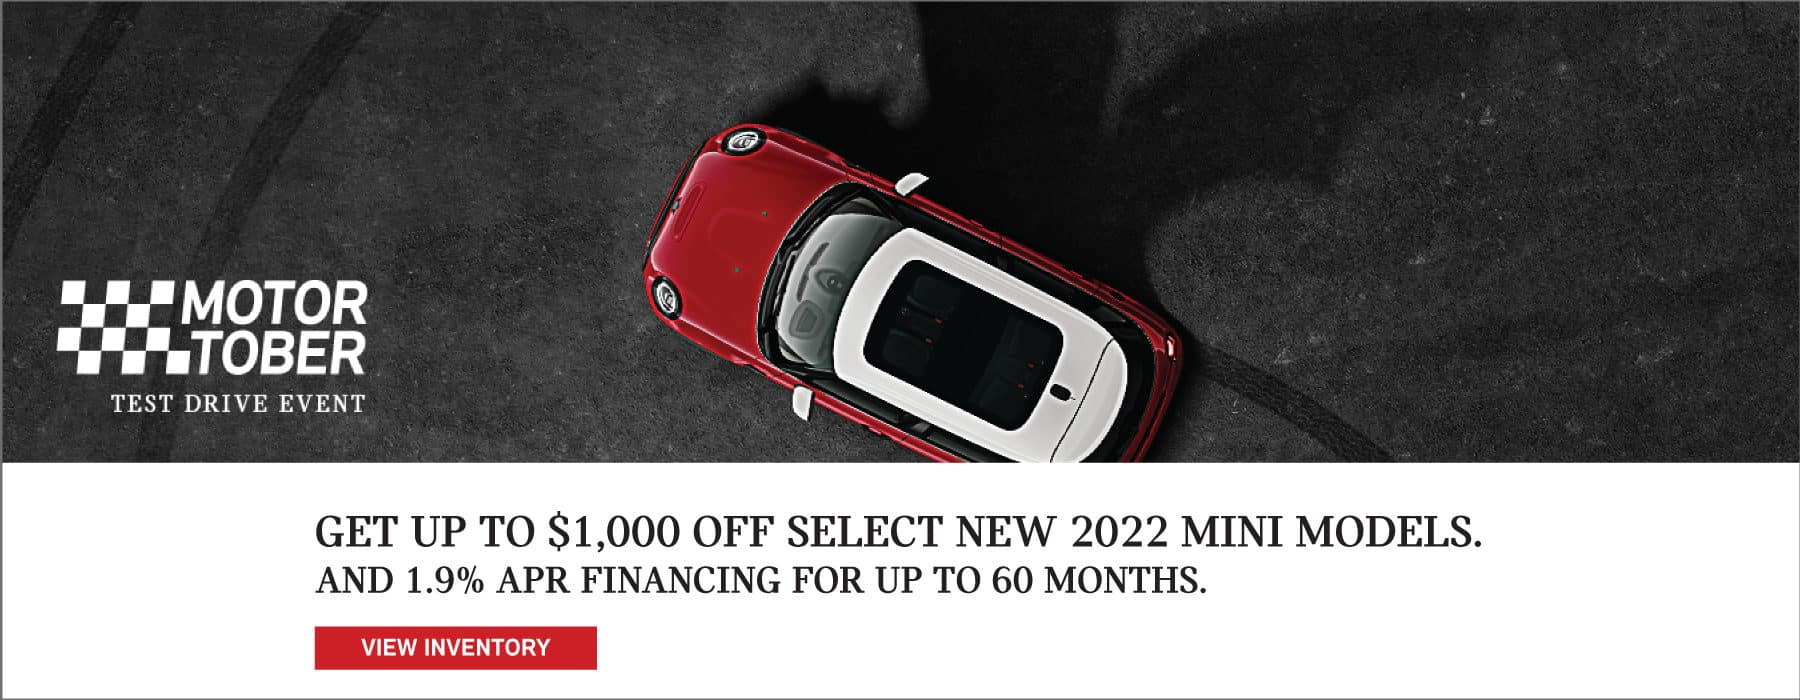 Up to $1,000 off select new 2022 MINI models. And 1.9% APR financing for up to 60 months. See dealer for full details. Click to view inventory. Image shows a red and white MINI vehicle parked on concrete next to the shadow of a bat. MotorTober Test Drive Event logo is placed over the image.